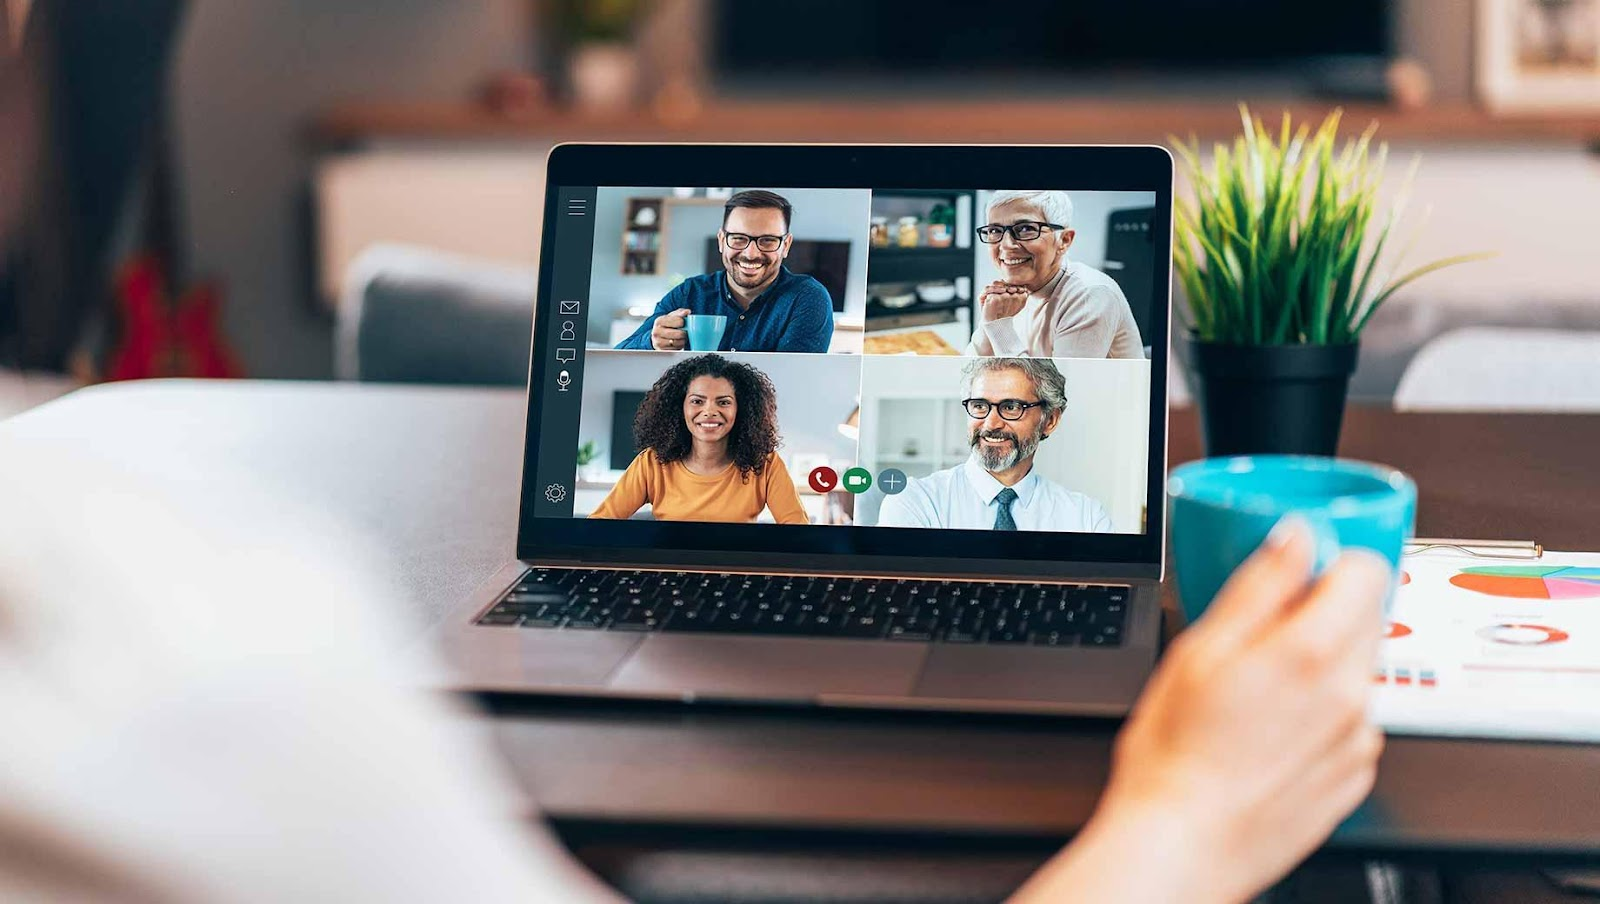 Remote Work Outcomes Depend on the Manager